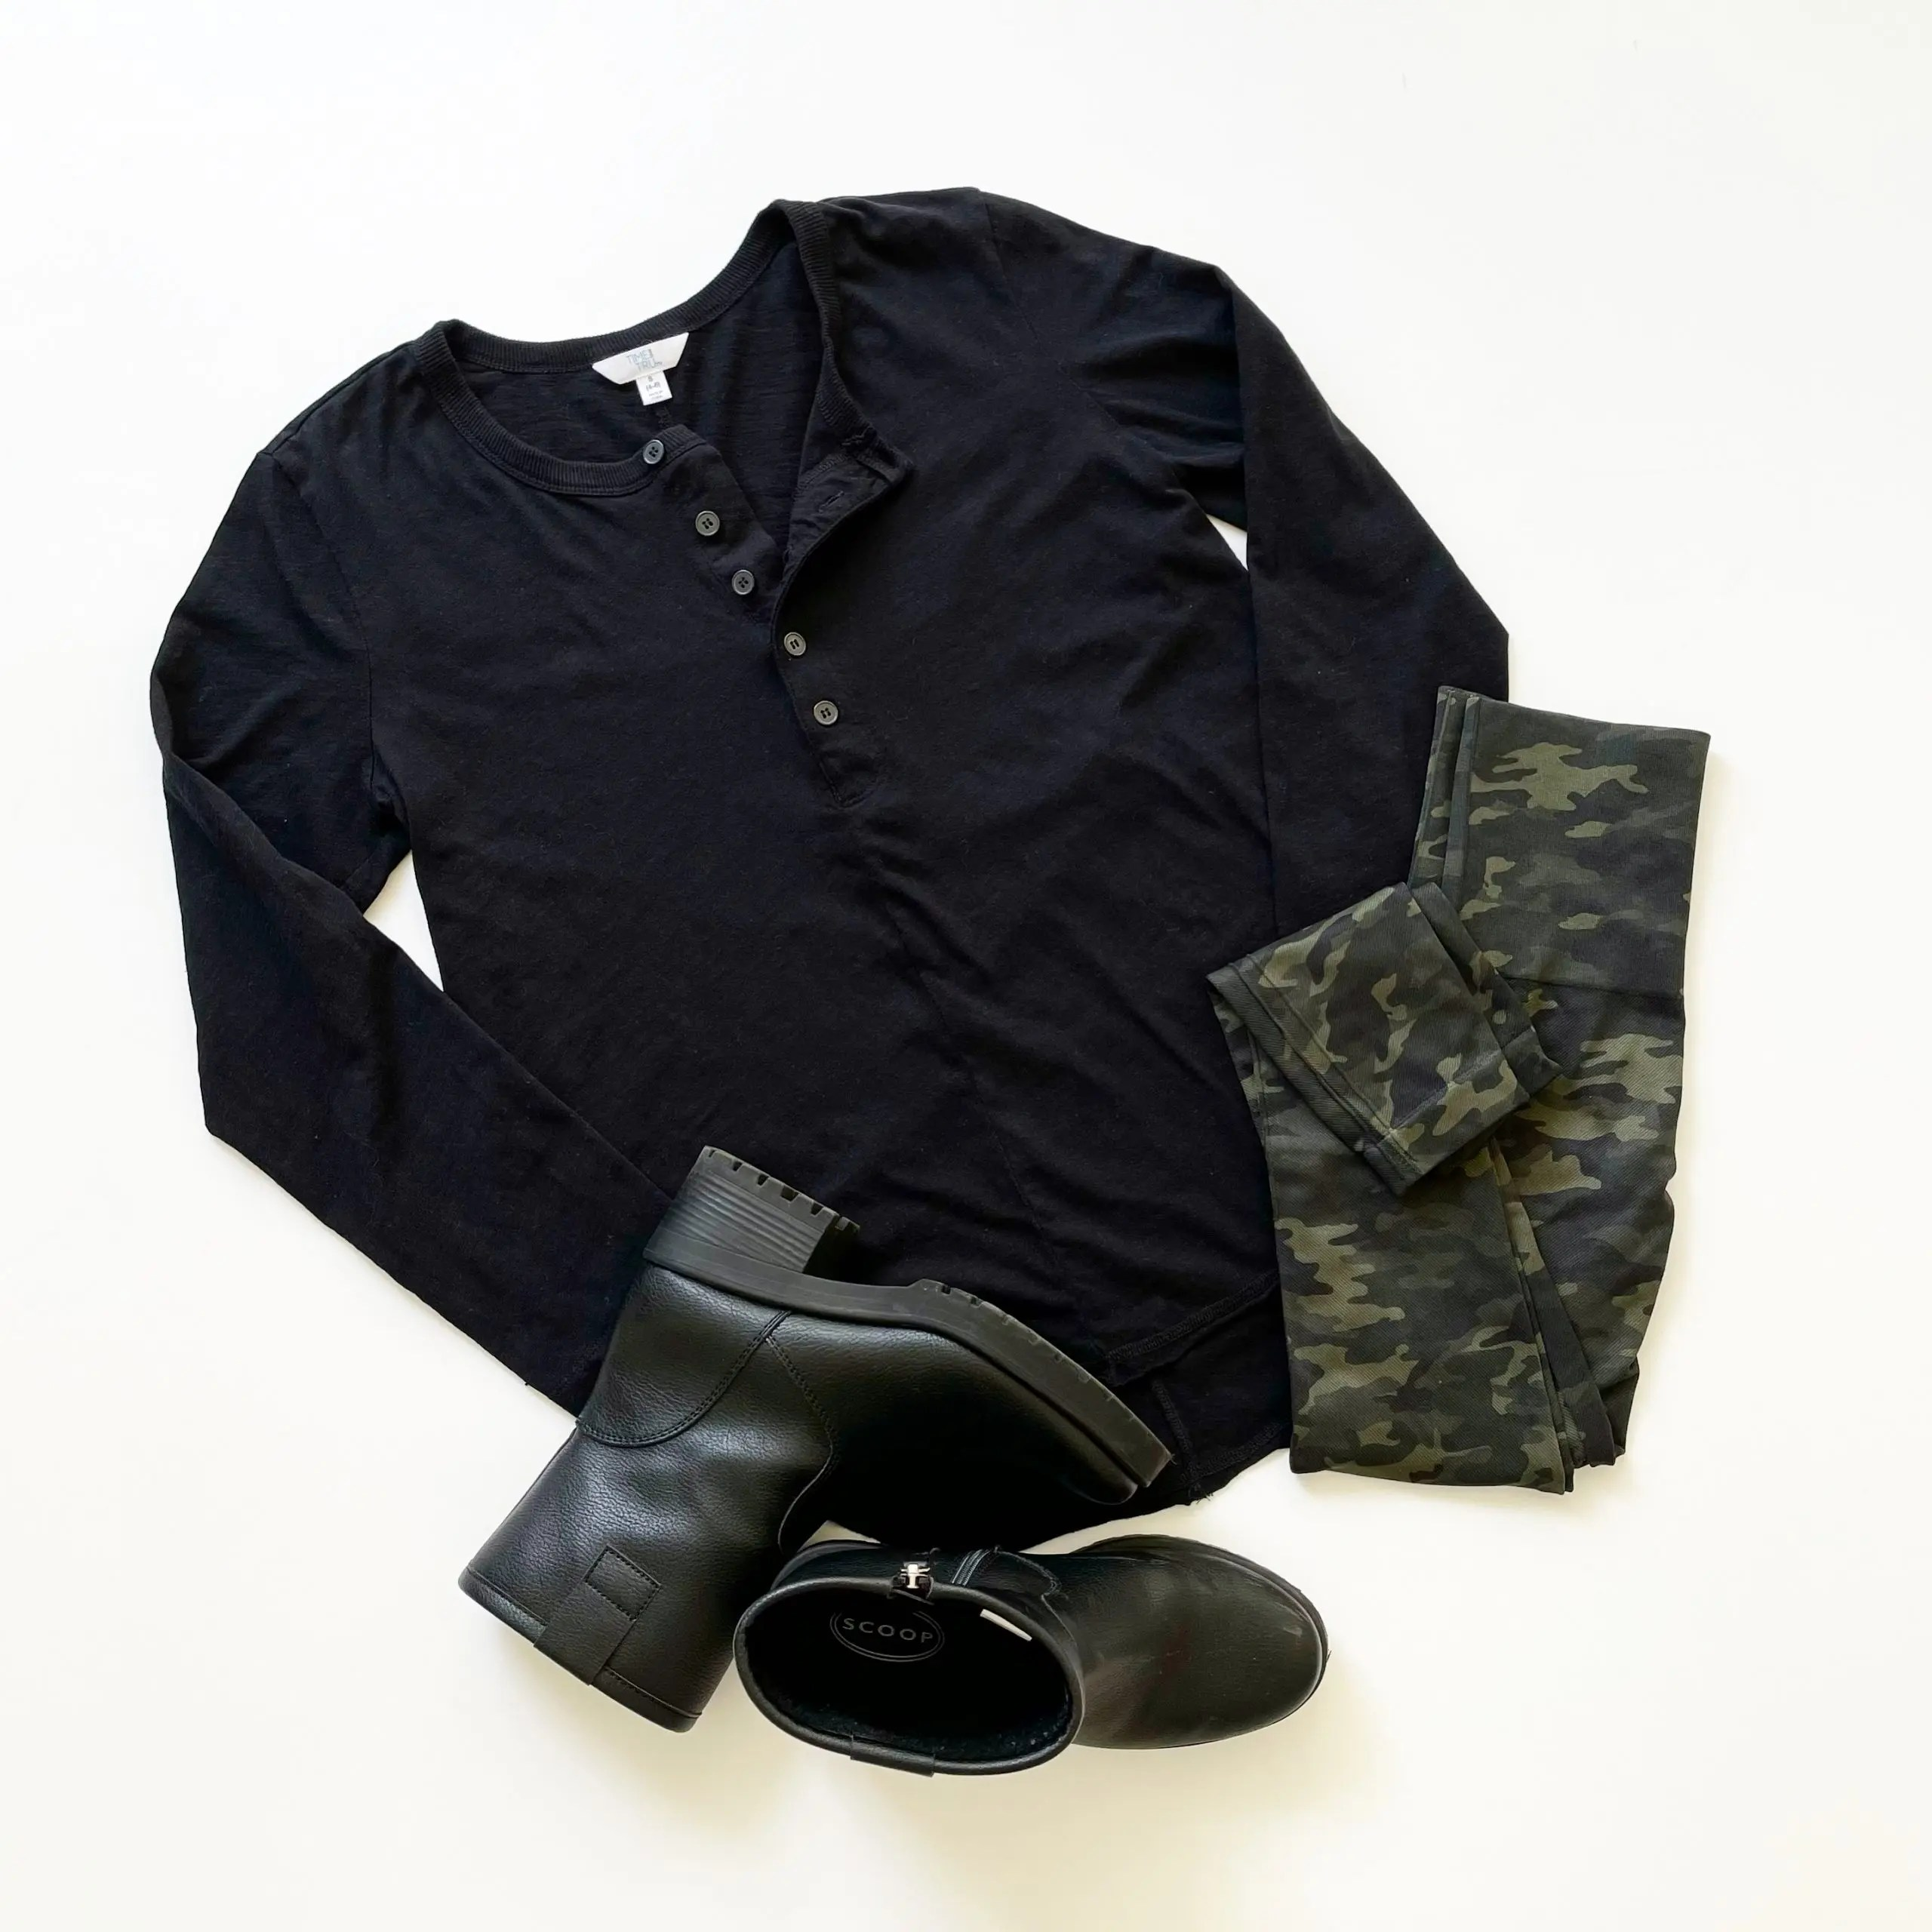 Time and Tru Long Sleeve Henley, Scoop Lug Boots and Spanx Seamless Leggings